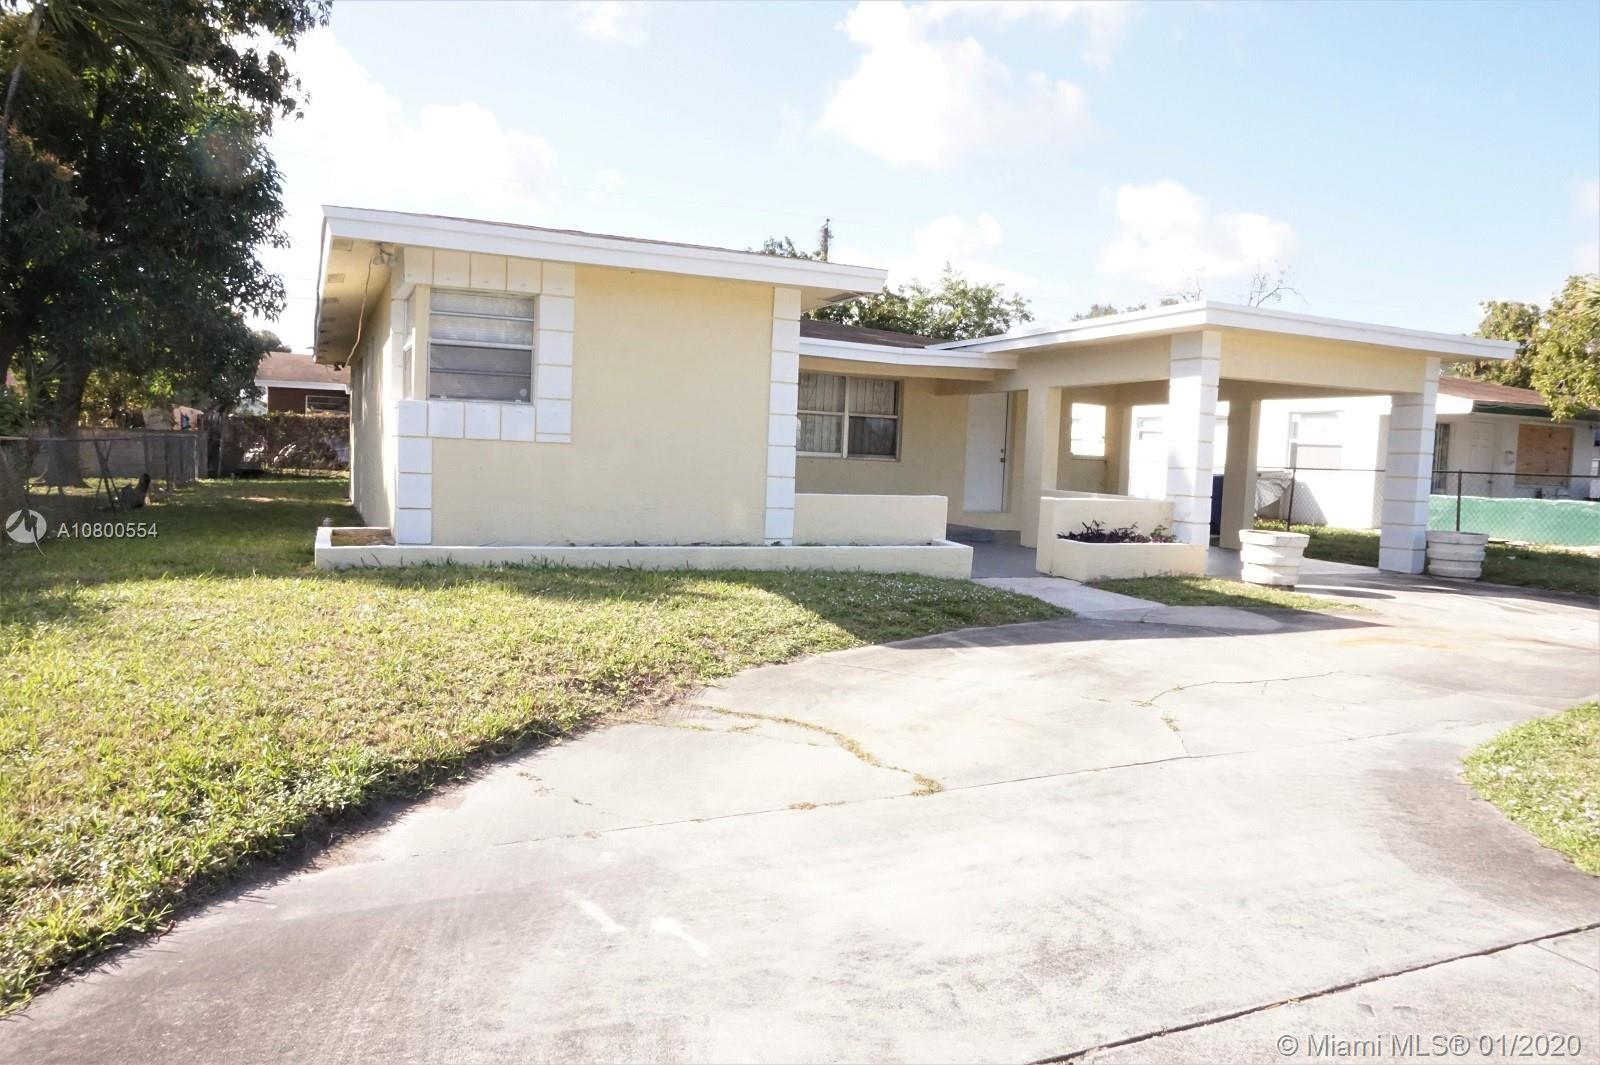 BEAUTIFULLY UPGRADED 3 BED 2BATH AND AN ADDITIONAL ROOM SINGLE FAMILY HOUSE IN ROOSEVELT GARDENS , FORT LAUDERDALE. UPGRADED KITCHEN WITH NATURAL WOOD CABINETS AND GRANITE COUNTER TOP. THE PROPERTY COMES WITH NEWER SS APPLIANCES. WATER RESISTANT LAMINATE ALL THROUGH THE LIVING AREA. CLOSE TO EVERYTHING.